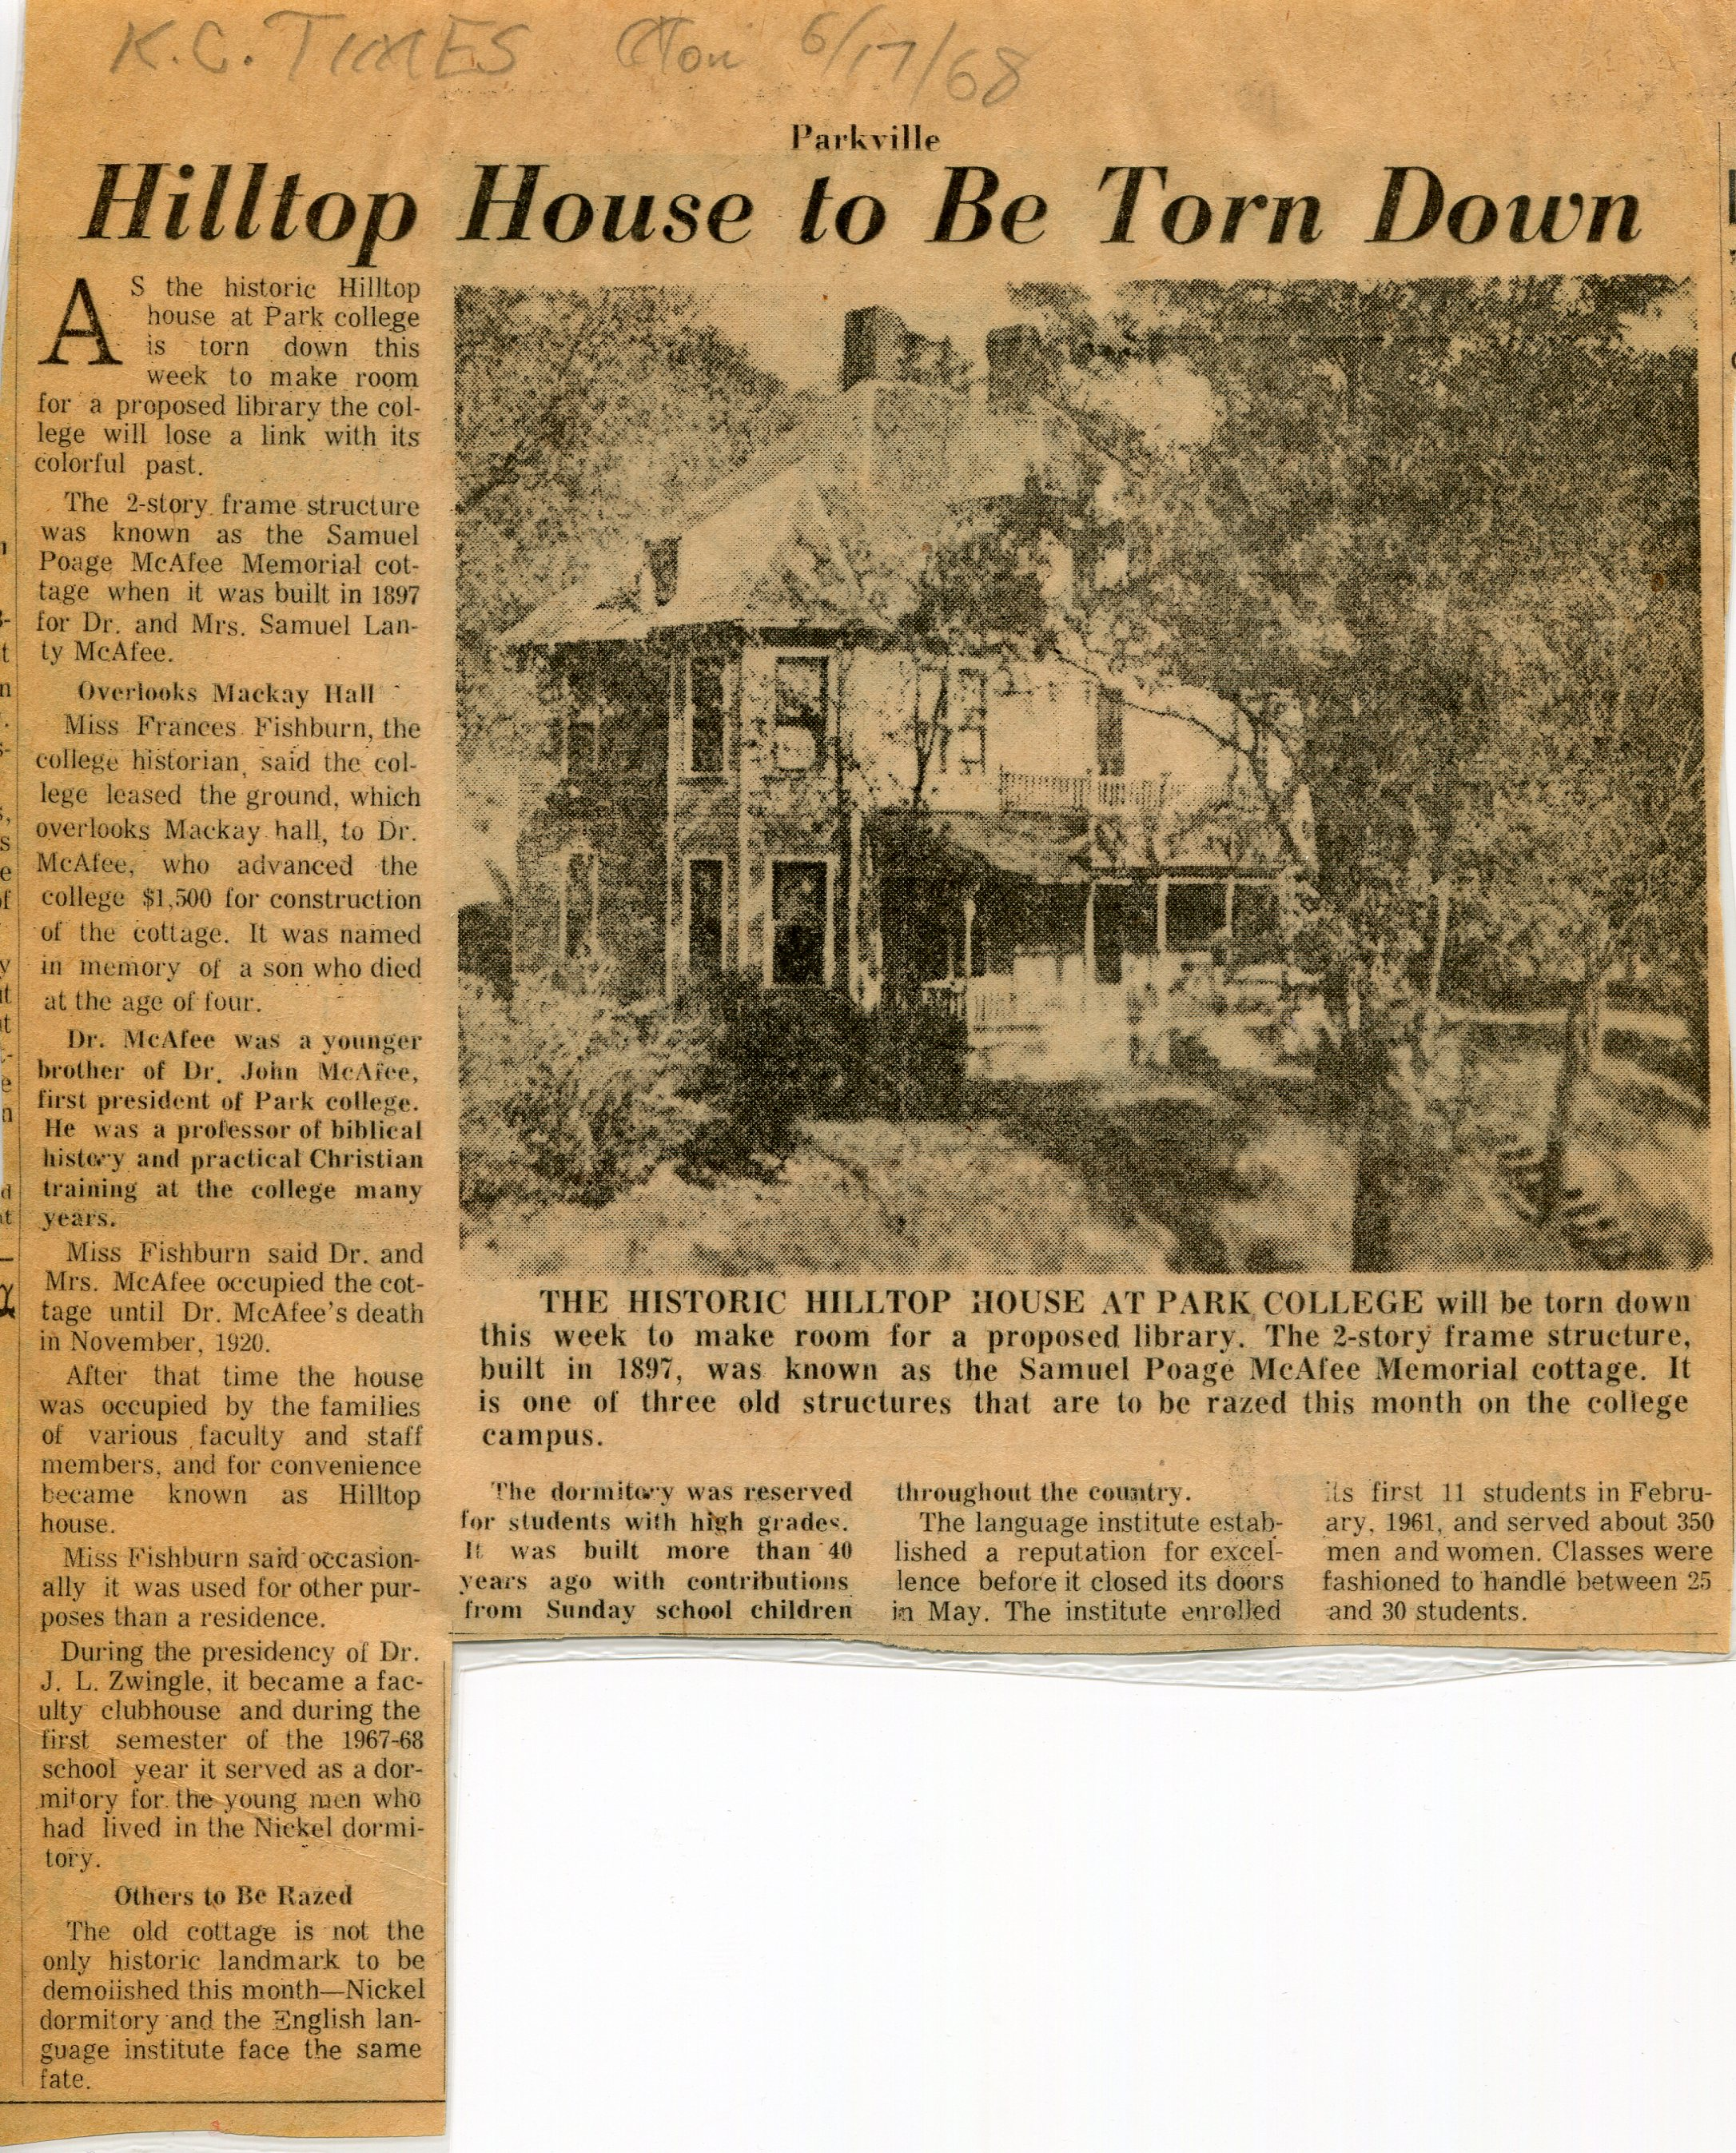 Newspaper article of Hilltop's demolition, along side two other buildings. Date of article is June 17, 1968.